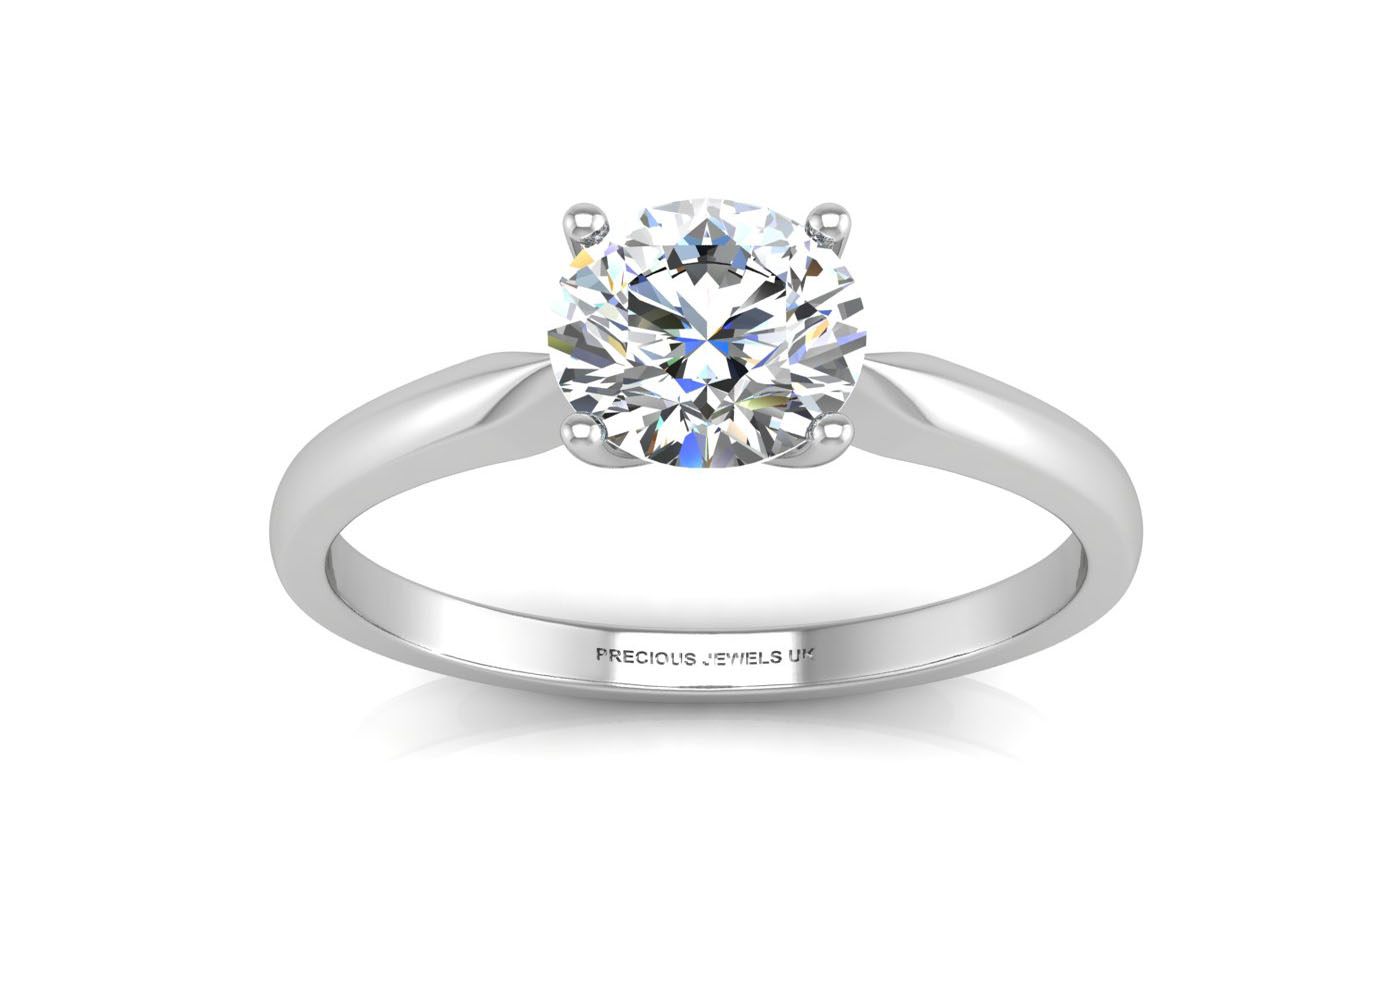 18ct White Gold D Flawless Diamond Enagagement Ring 0.50 Carats - Image 2 of 4